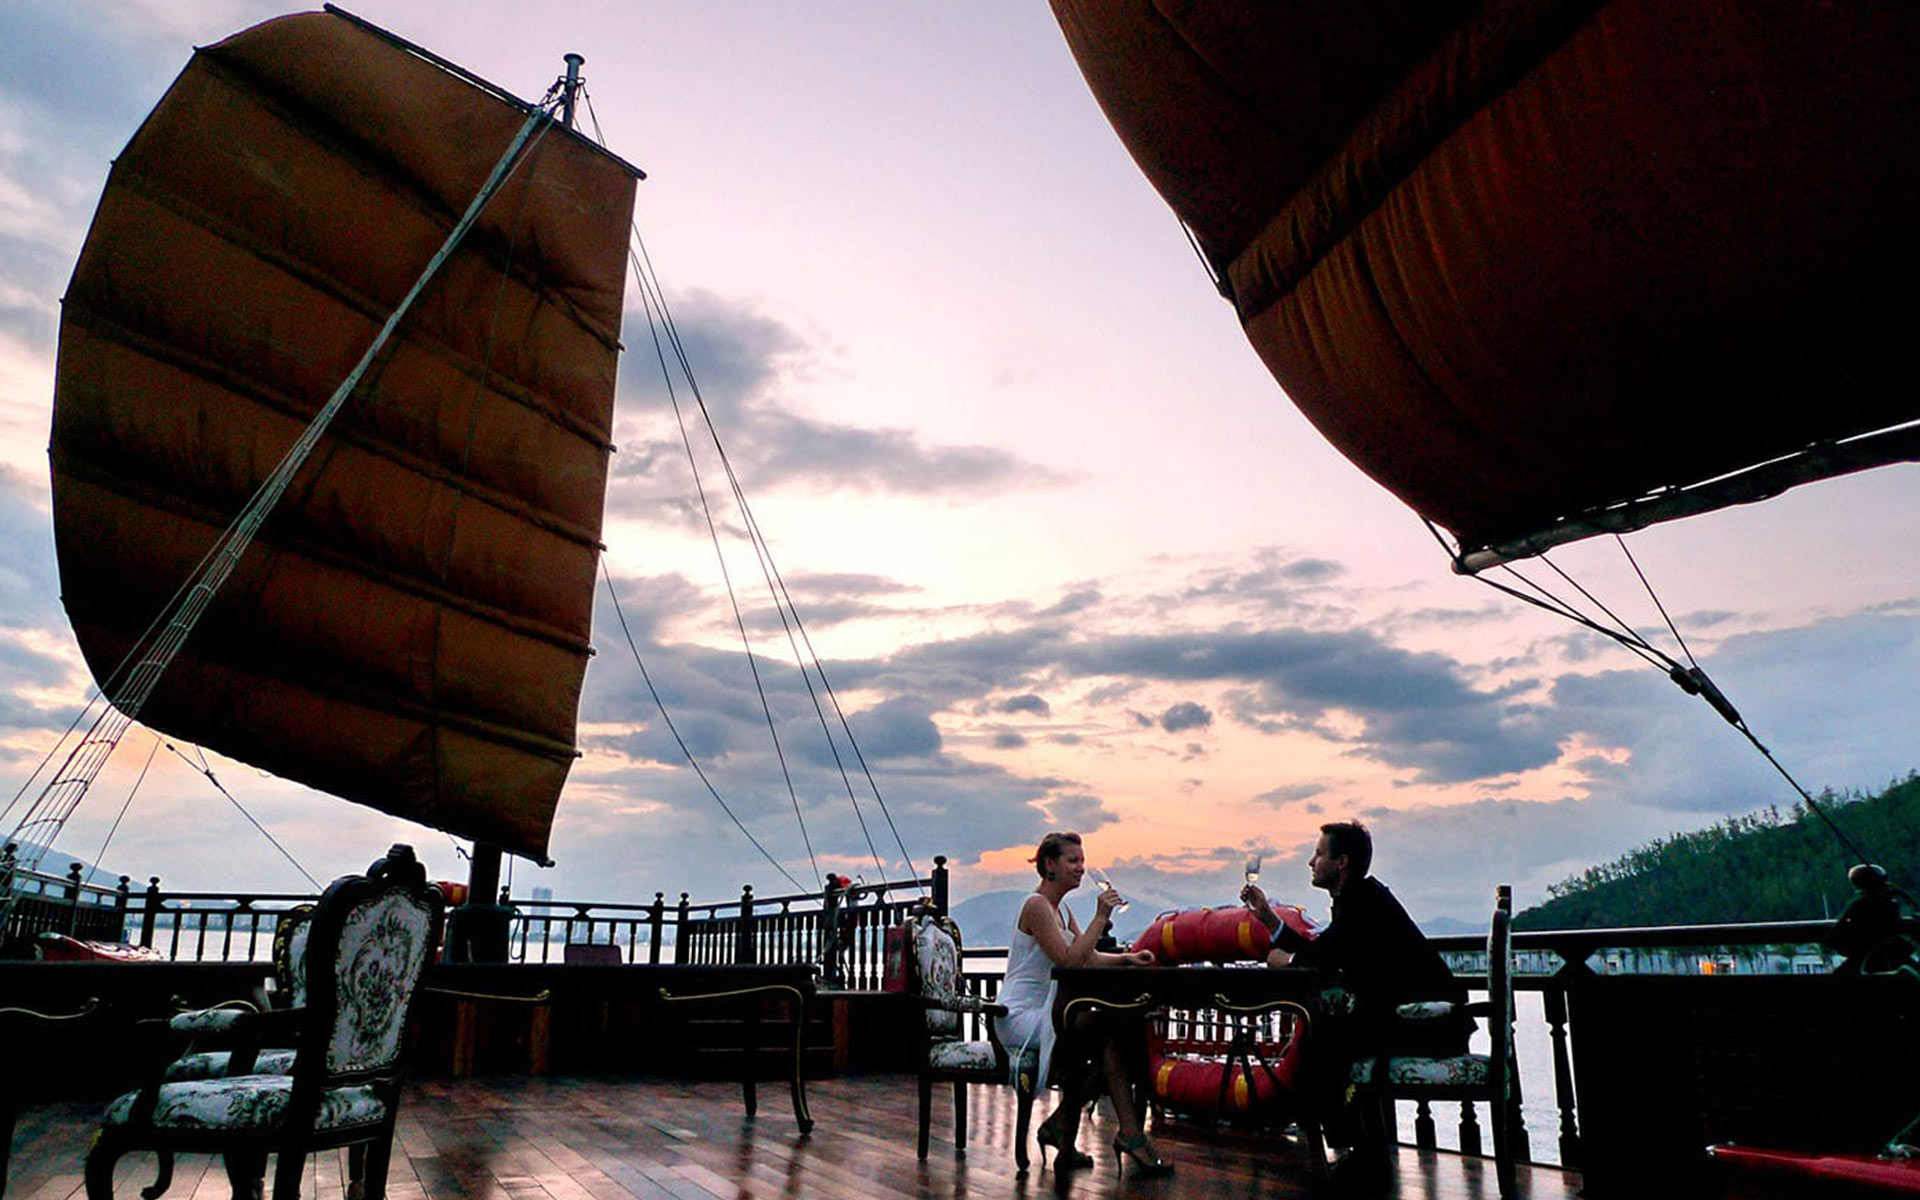 Romantic couples are highly recommended to set sail on Emperor Cruise in Nha Trang Bay in sunset.